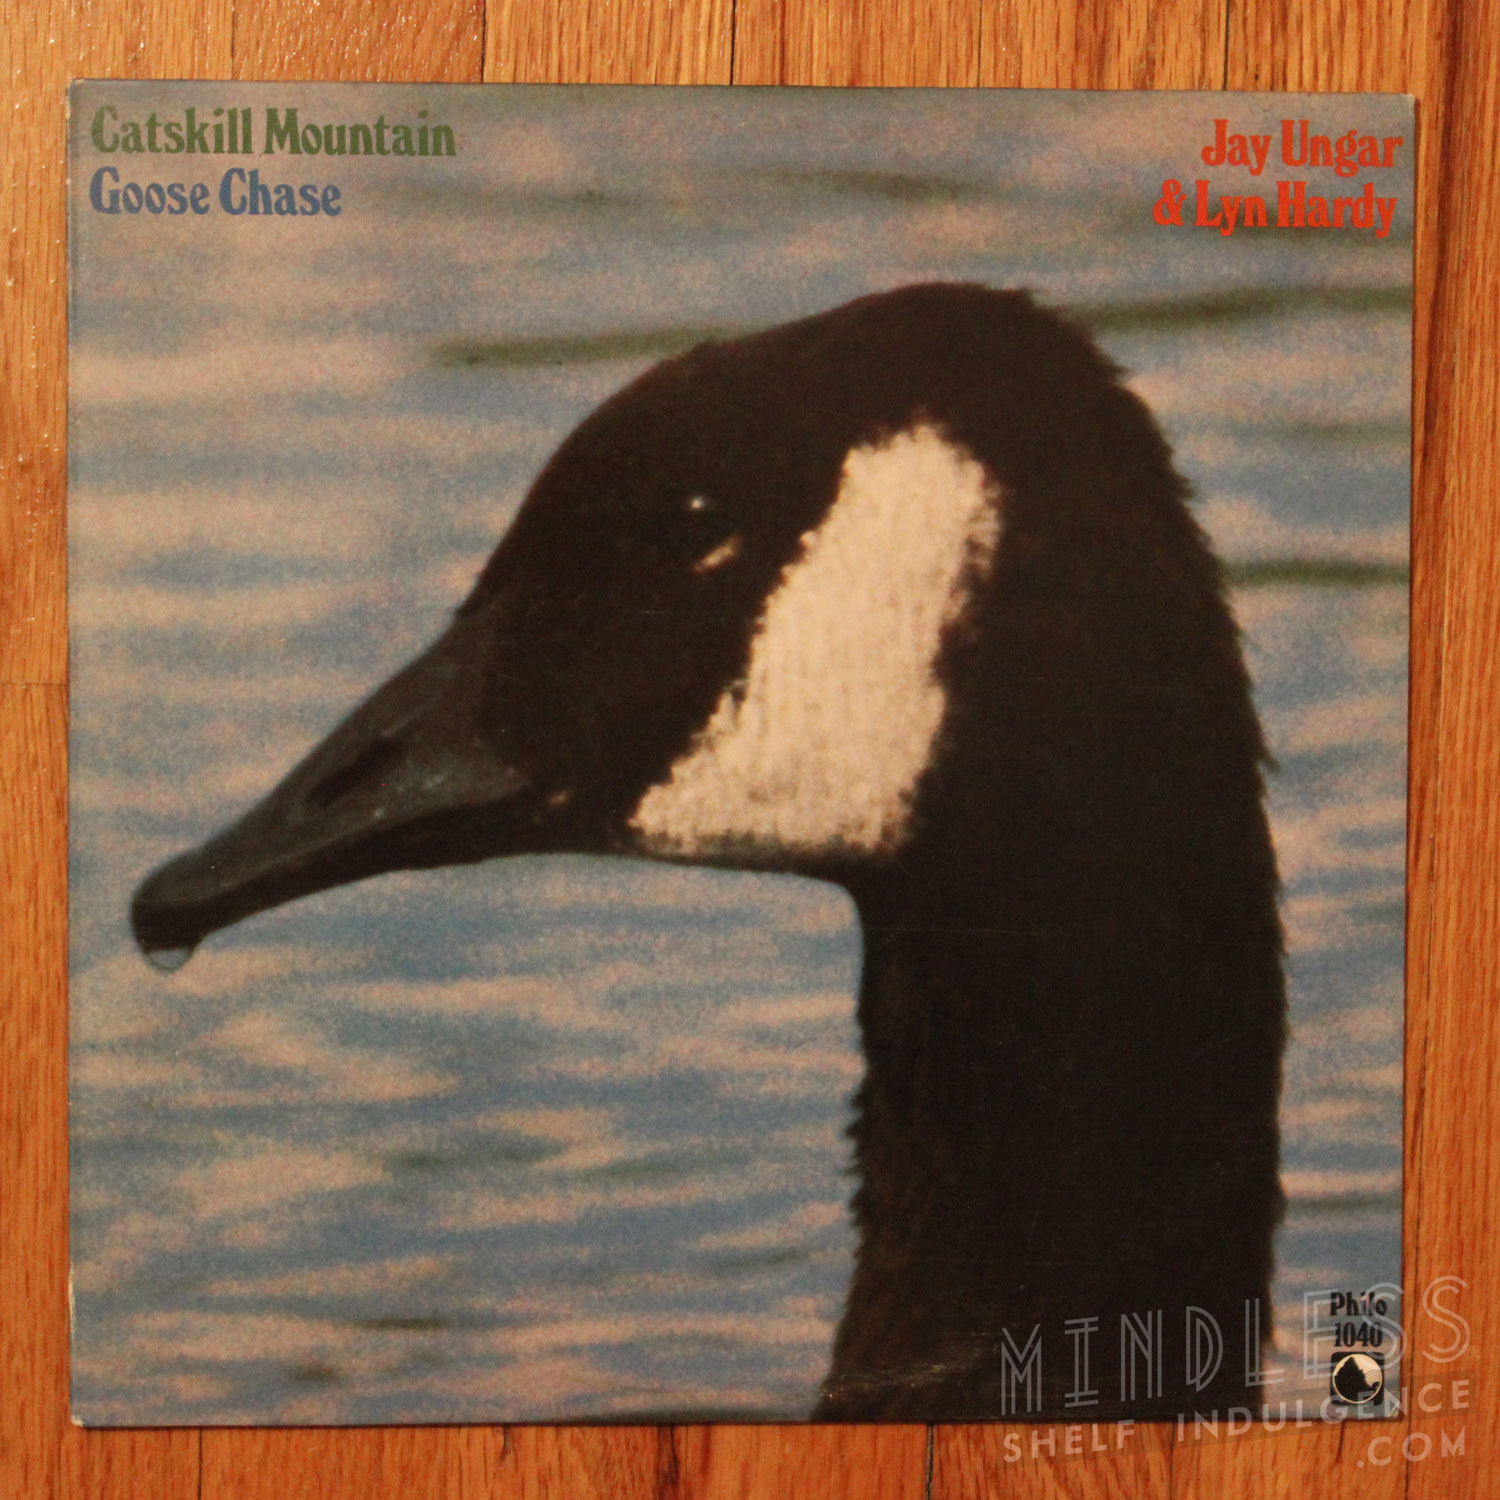 catskill_mountain_goose_chase_LP